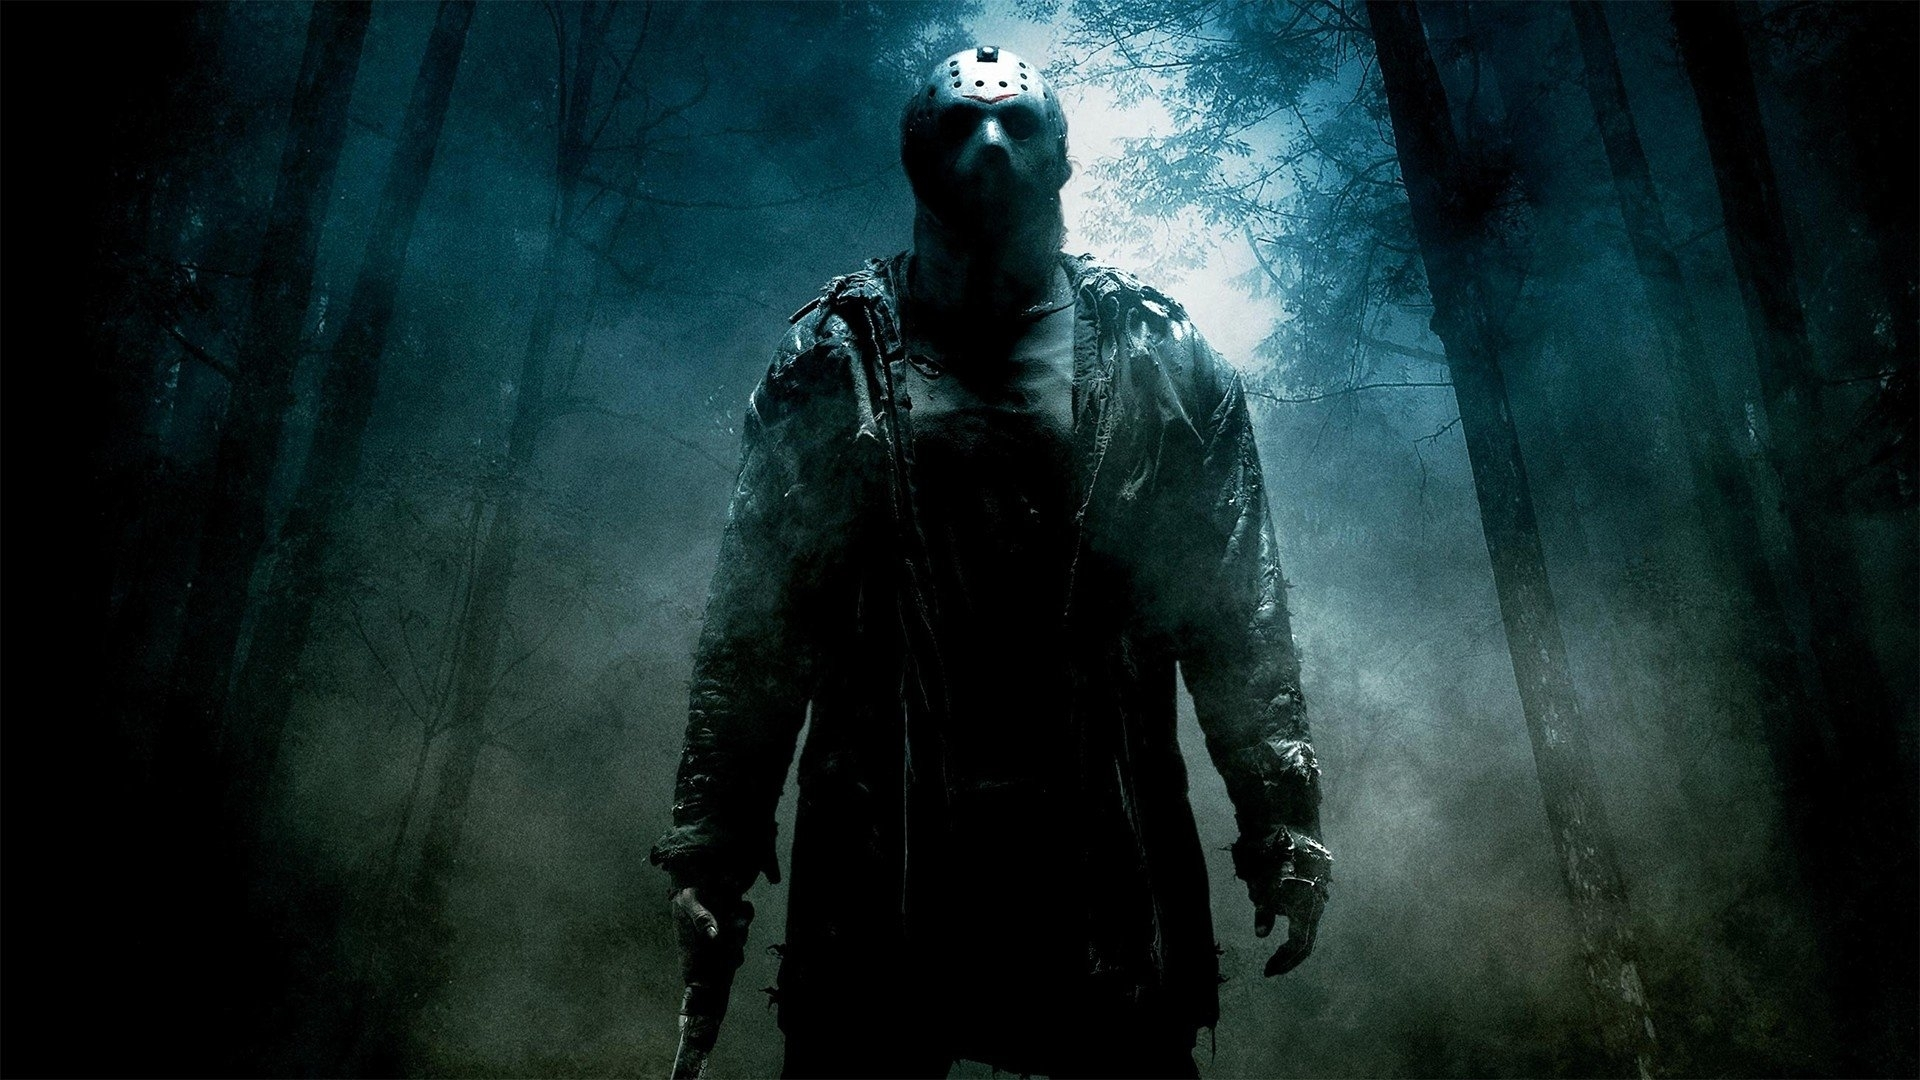 10 Best Friday The 13Th Wallpaper FULL HD 1920×1080 For PC Background